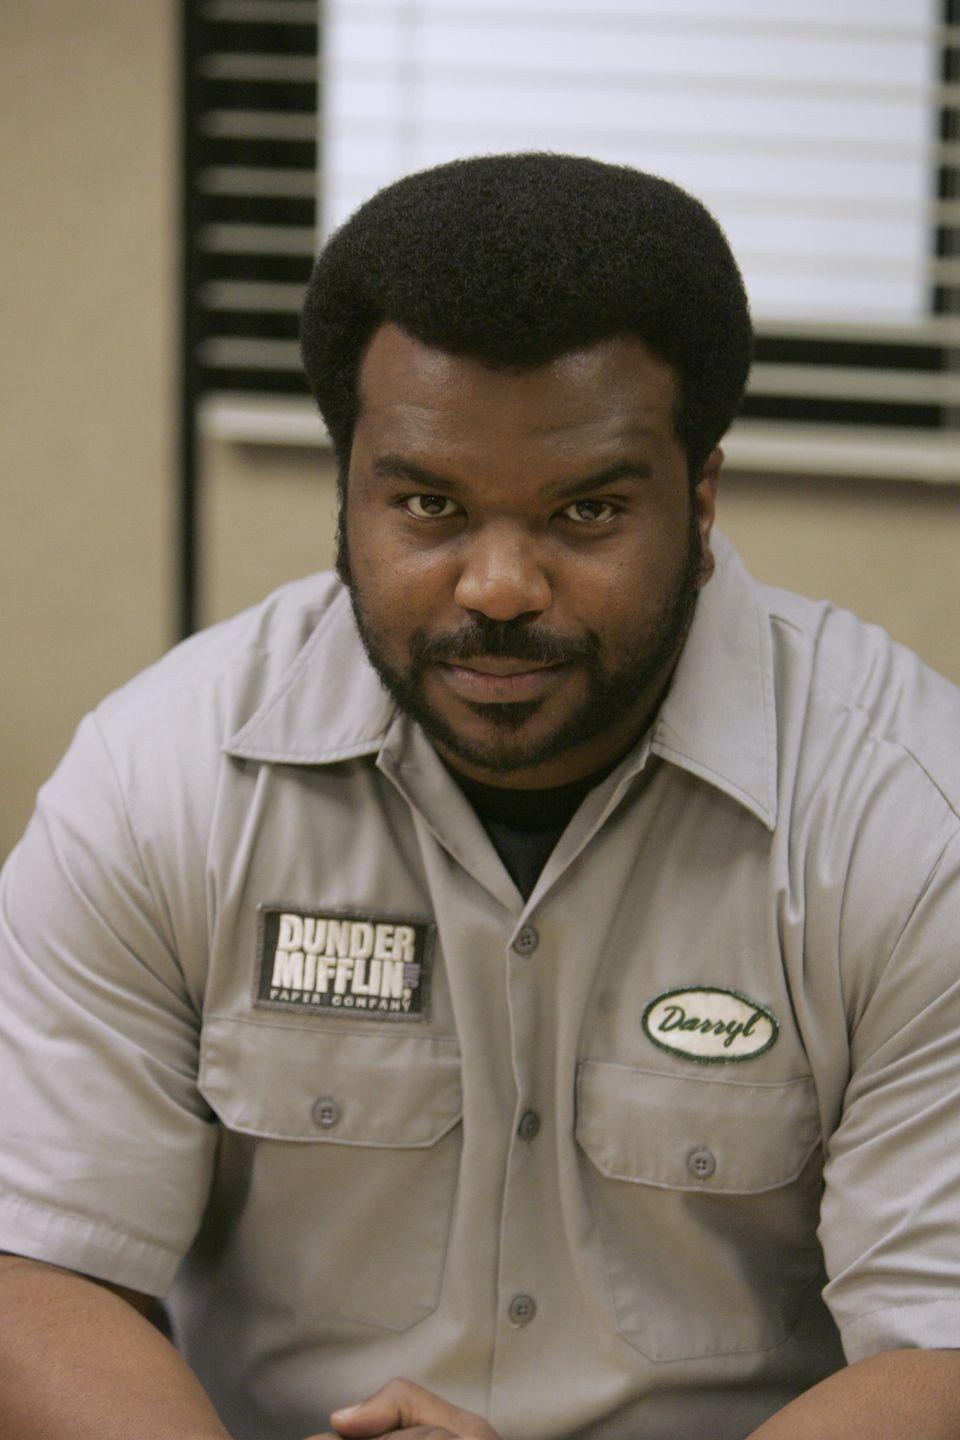 <p>Craig played Darryl Philbin, a Dunder Mifflin warehouse worker who started off slow in the show and eventually became a more prominent character. He's beloved for his silly, relaxed demeanor and the way he handles Michael's demands.</p>